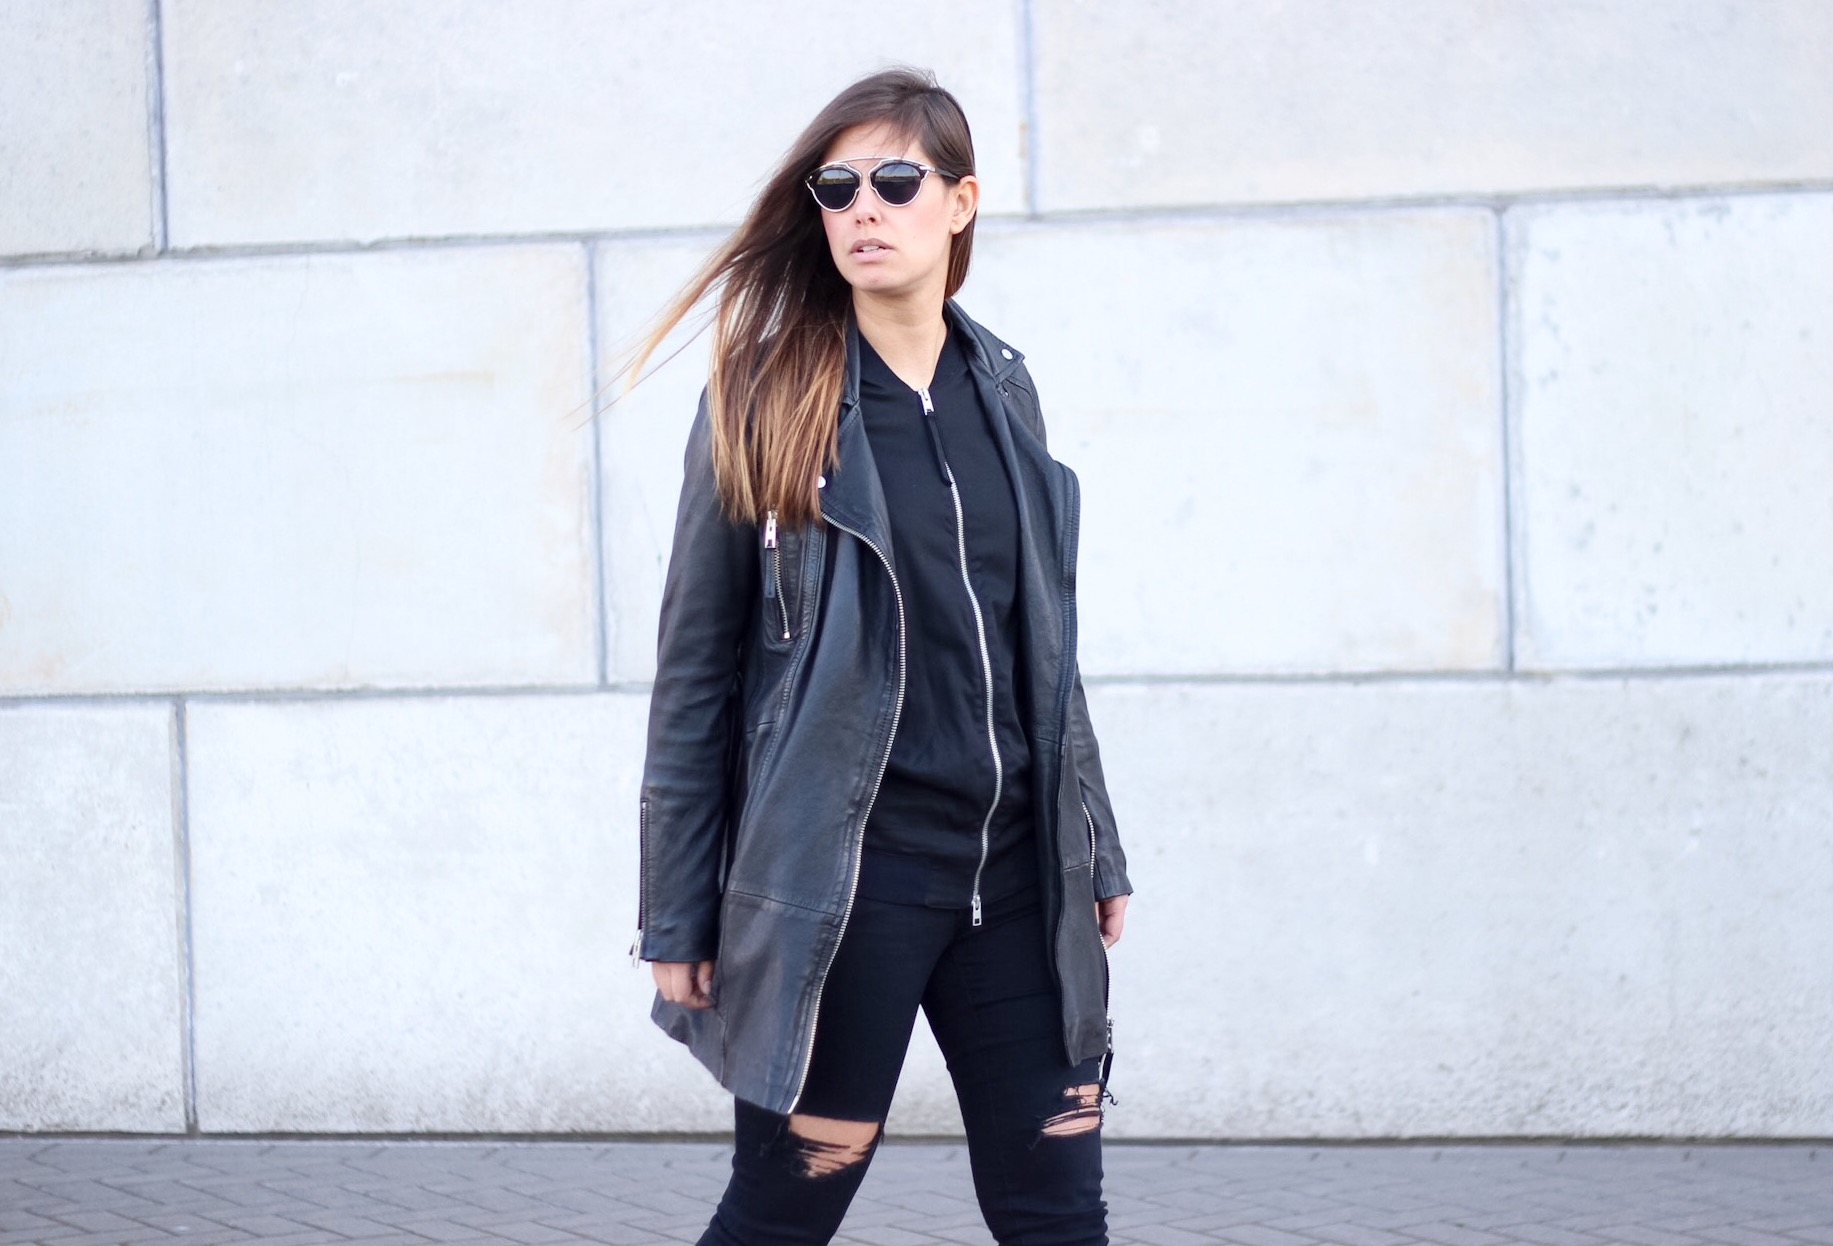 All-saints-asker-leather-jacket-outfit-street-style